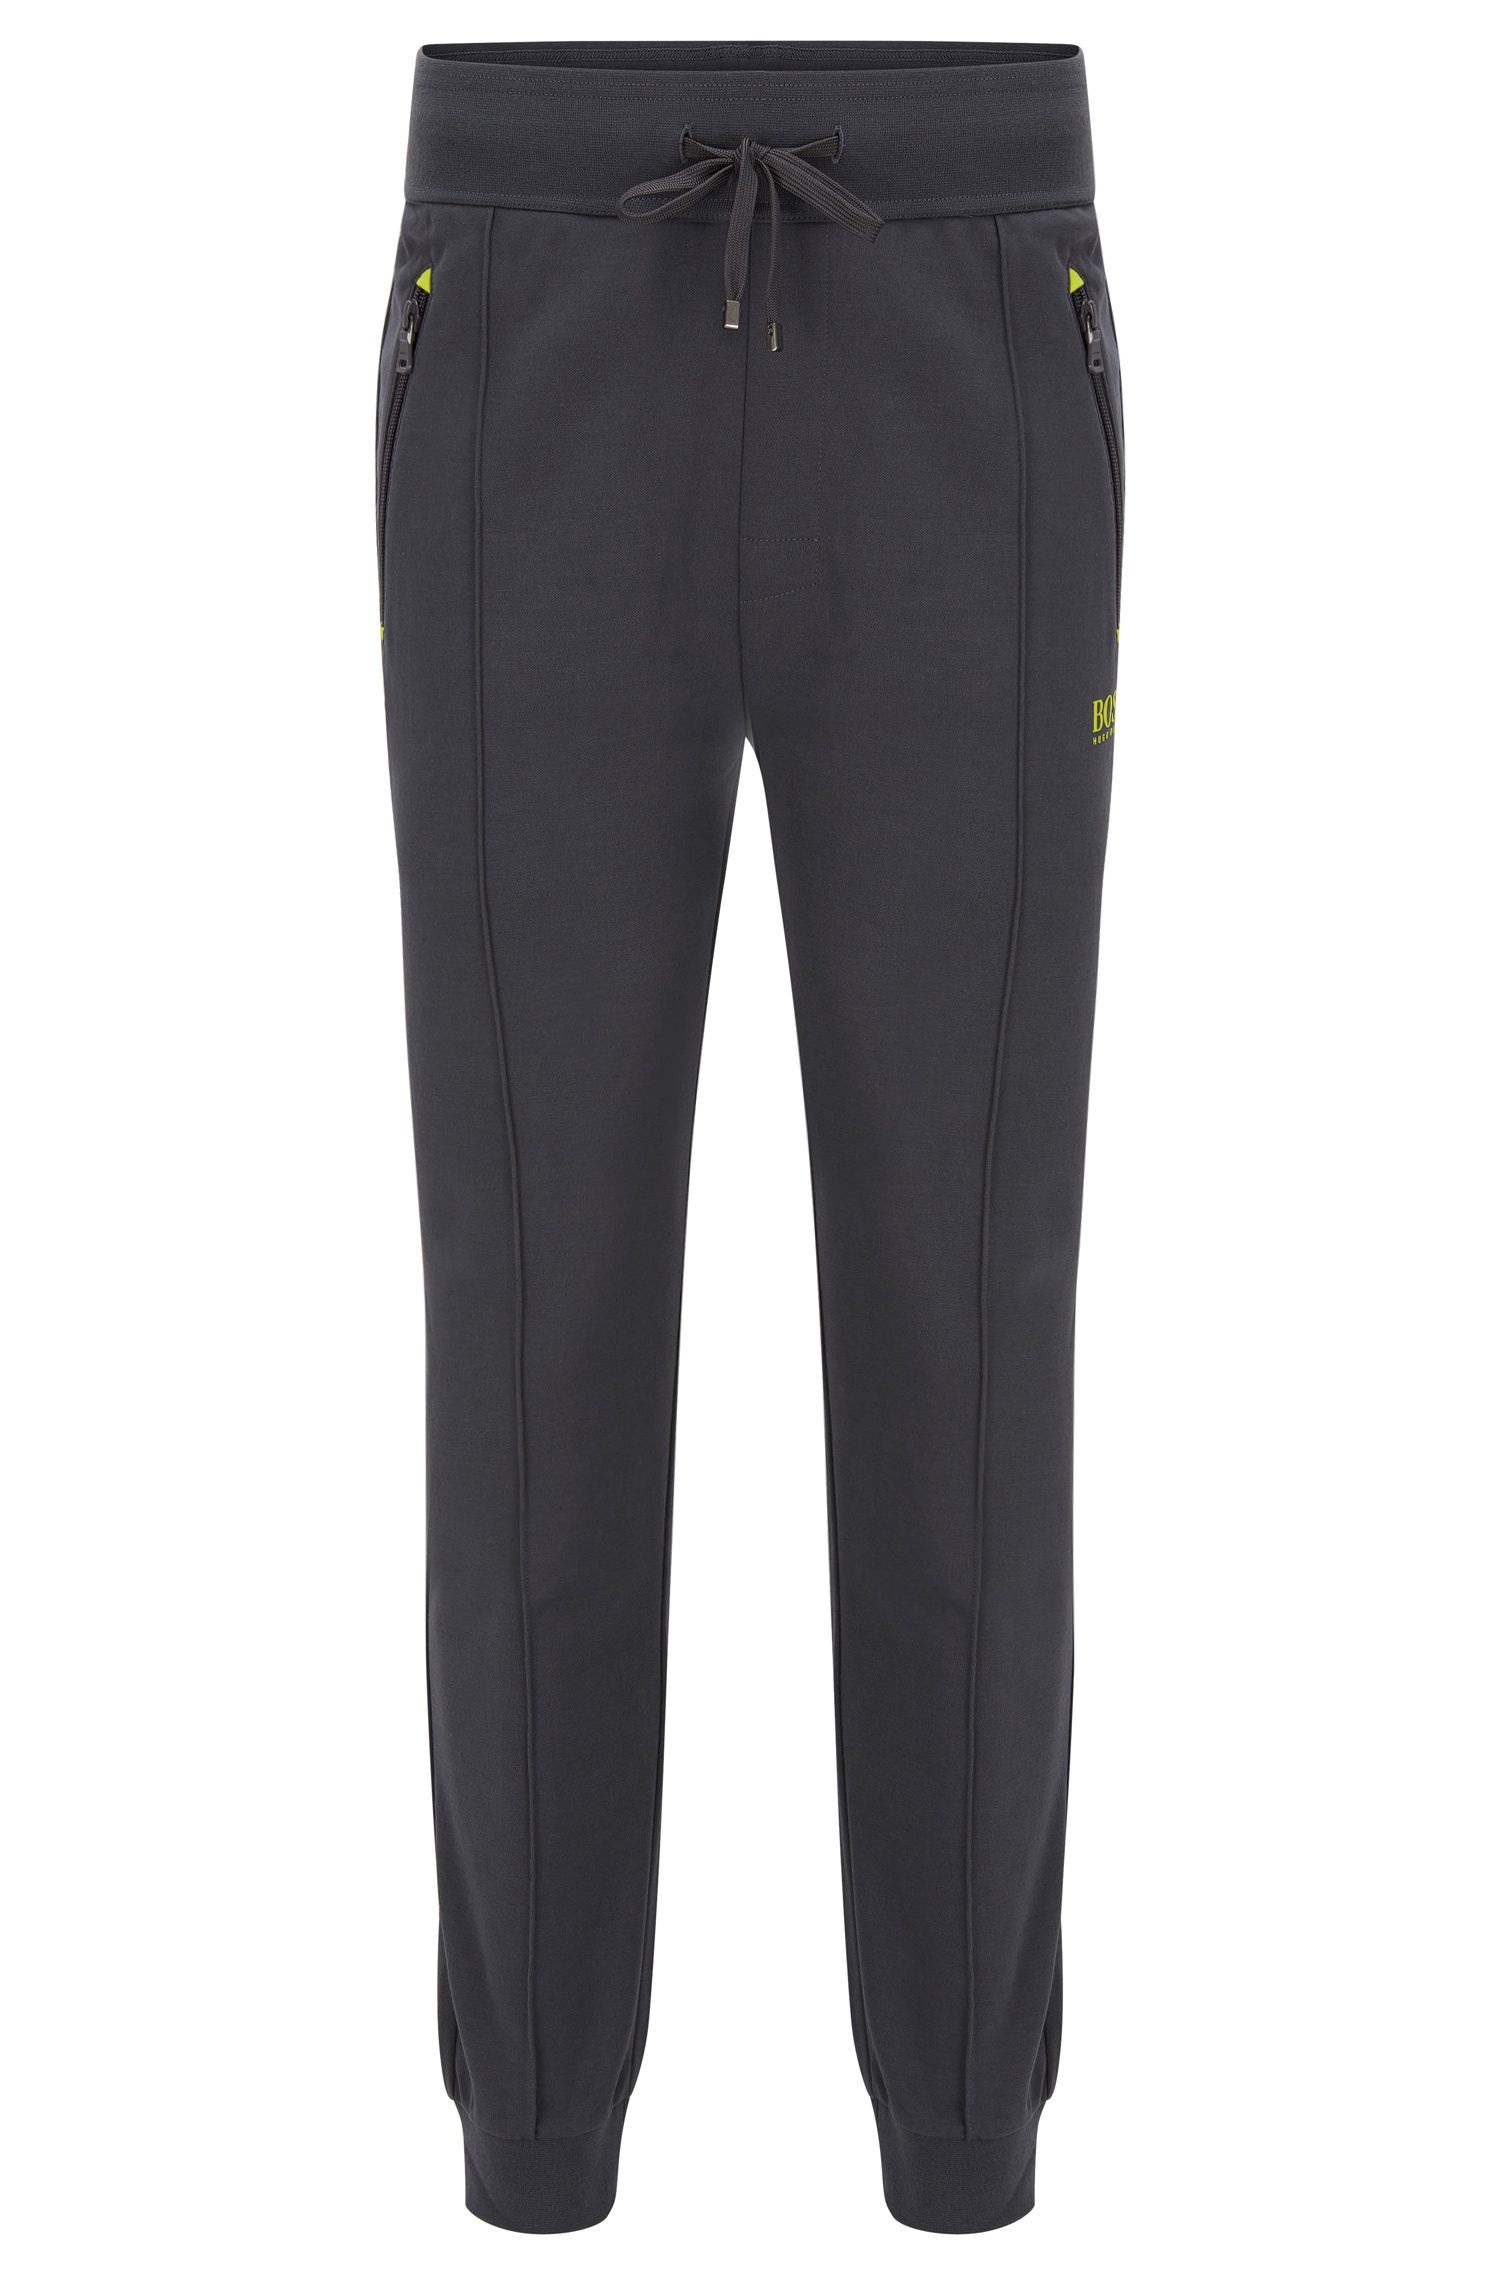 Stretch Cotton Lounge Pant | Long Pant Cuffs